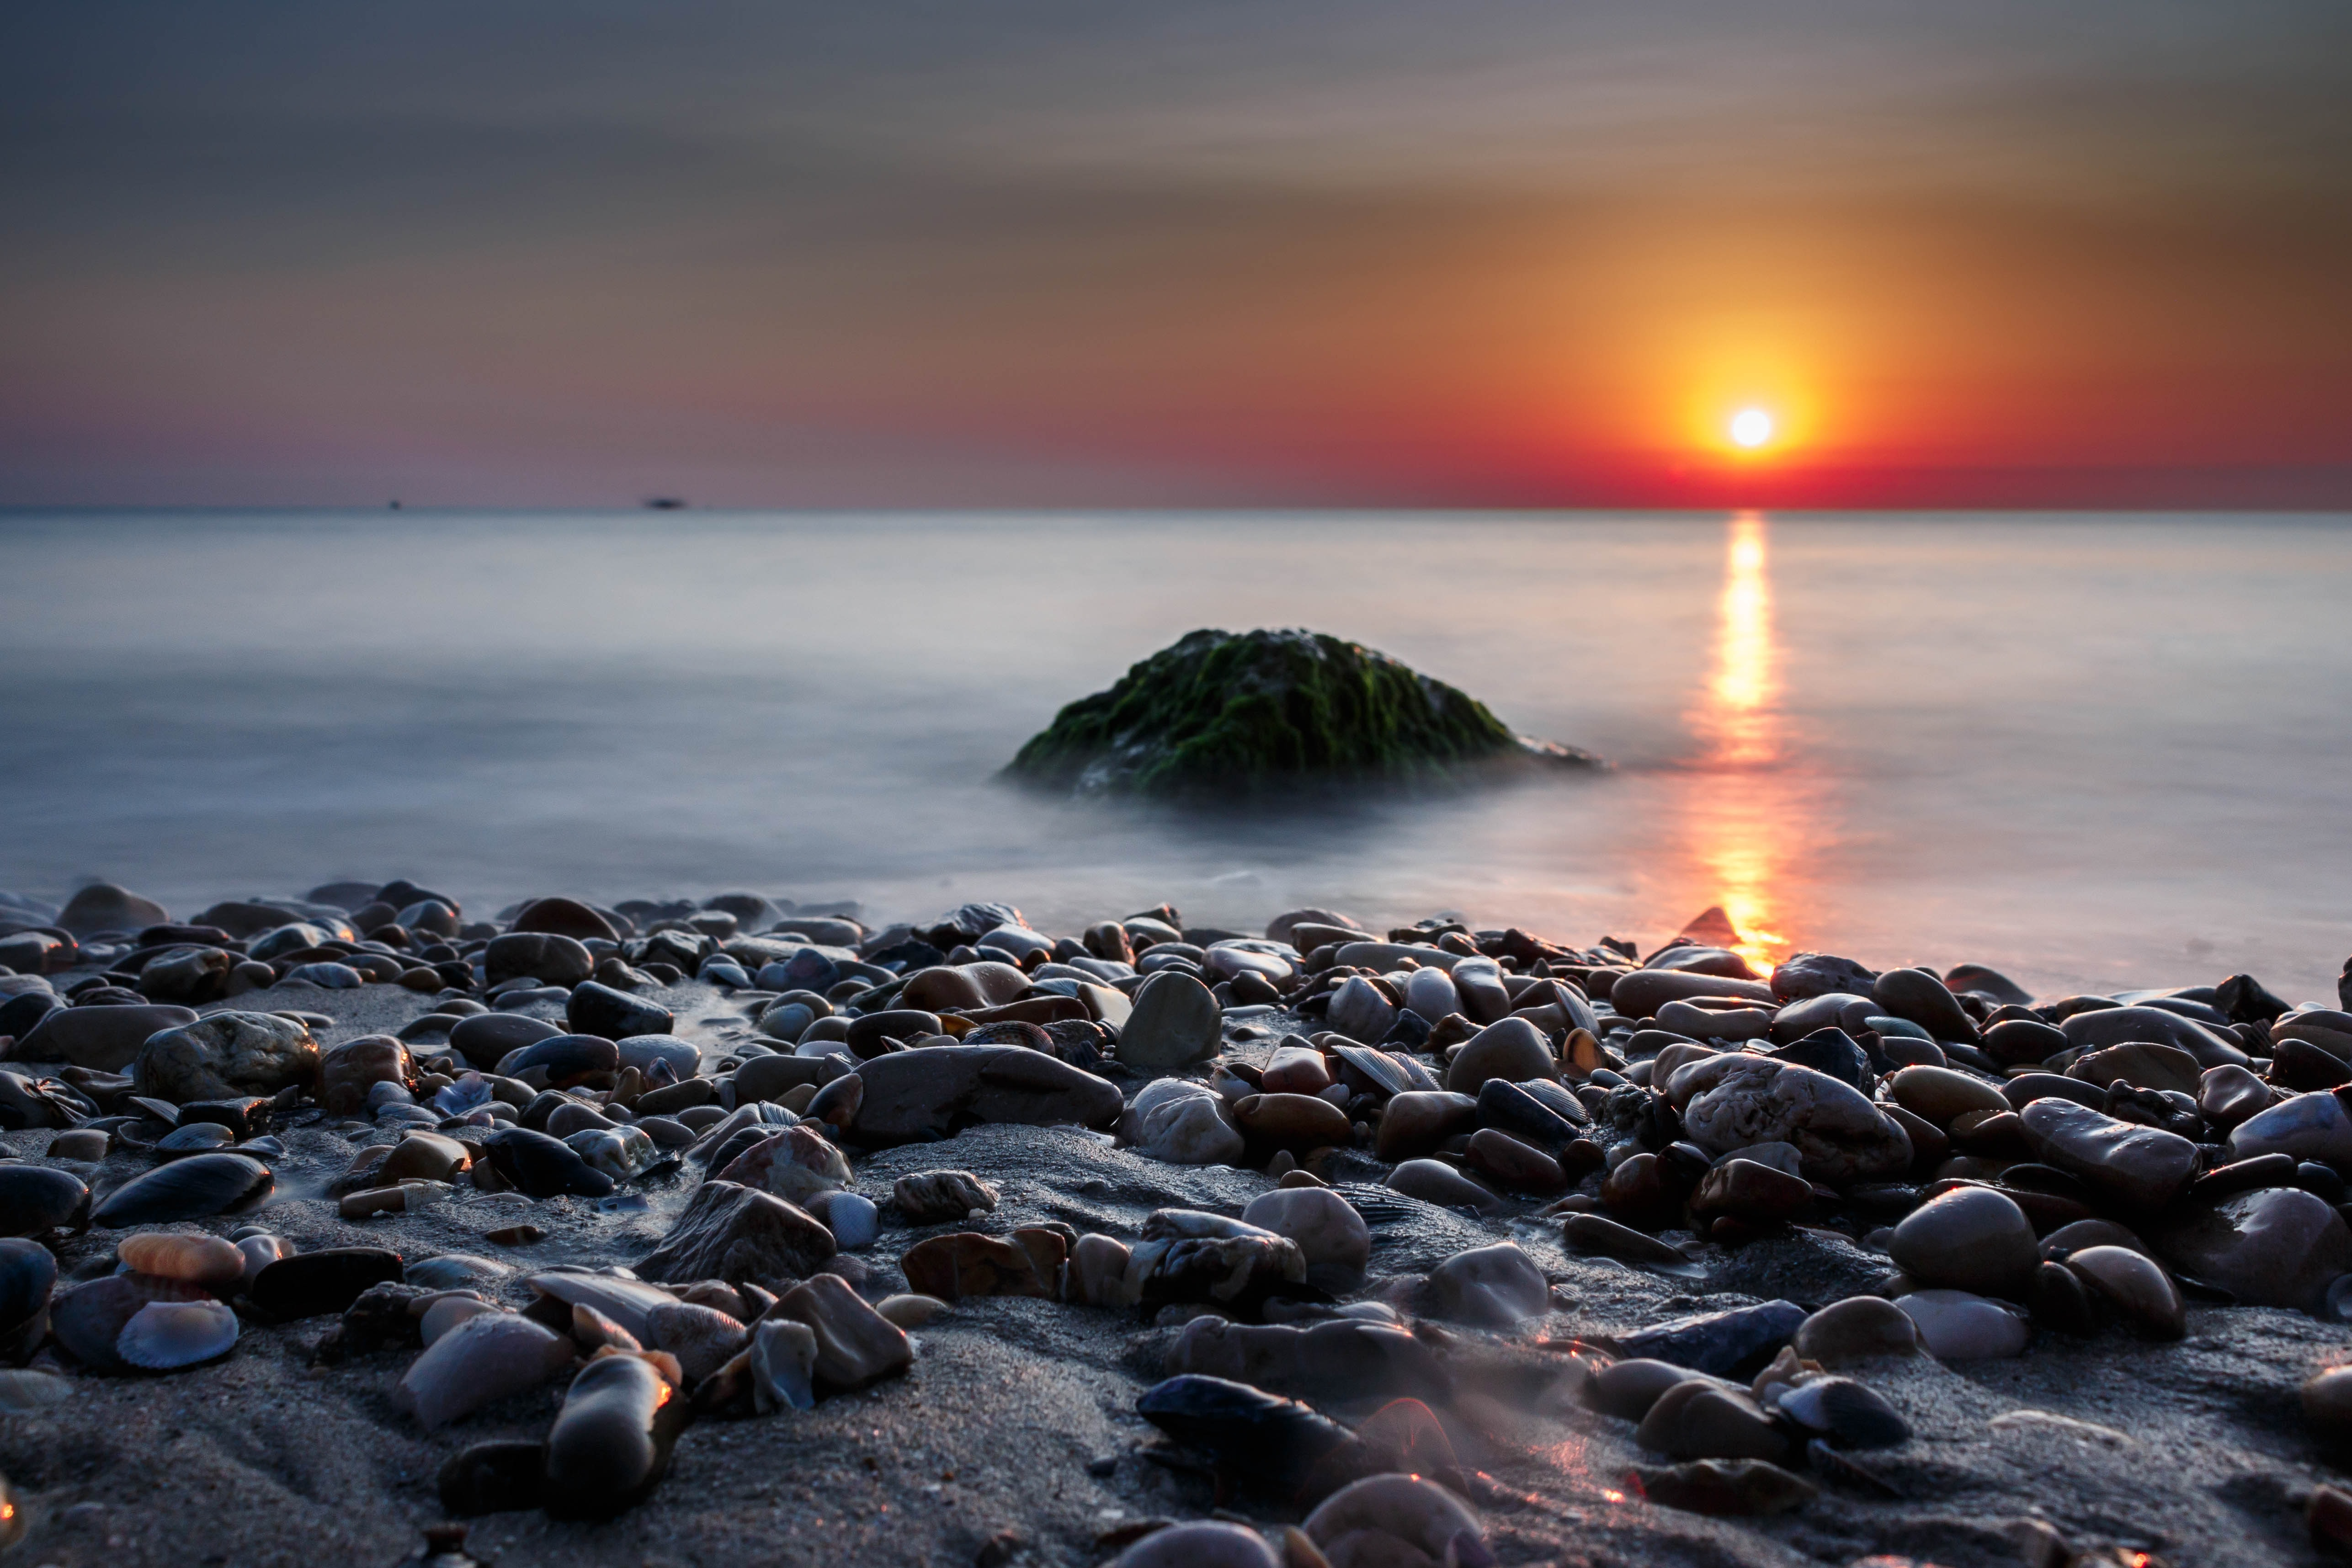 closeup photography of pebbles near ocean at golden hour